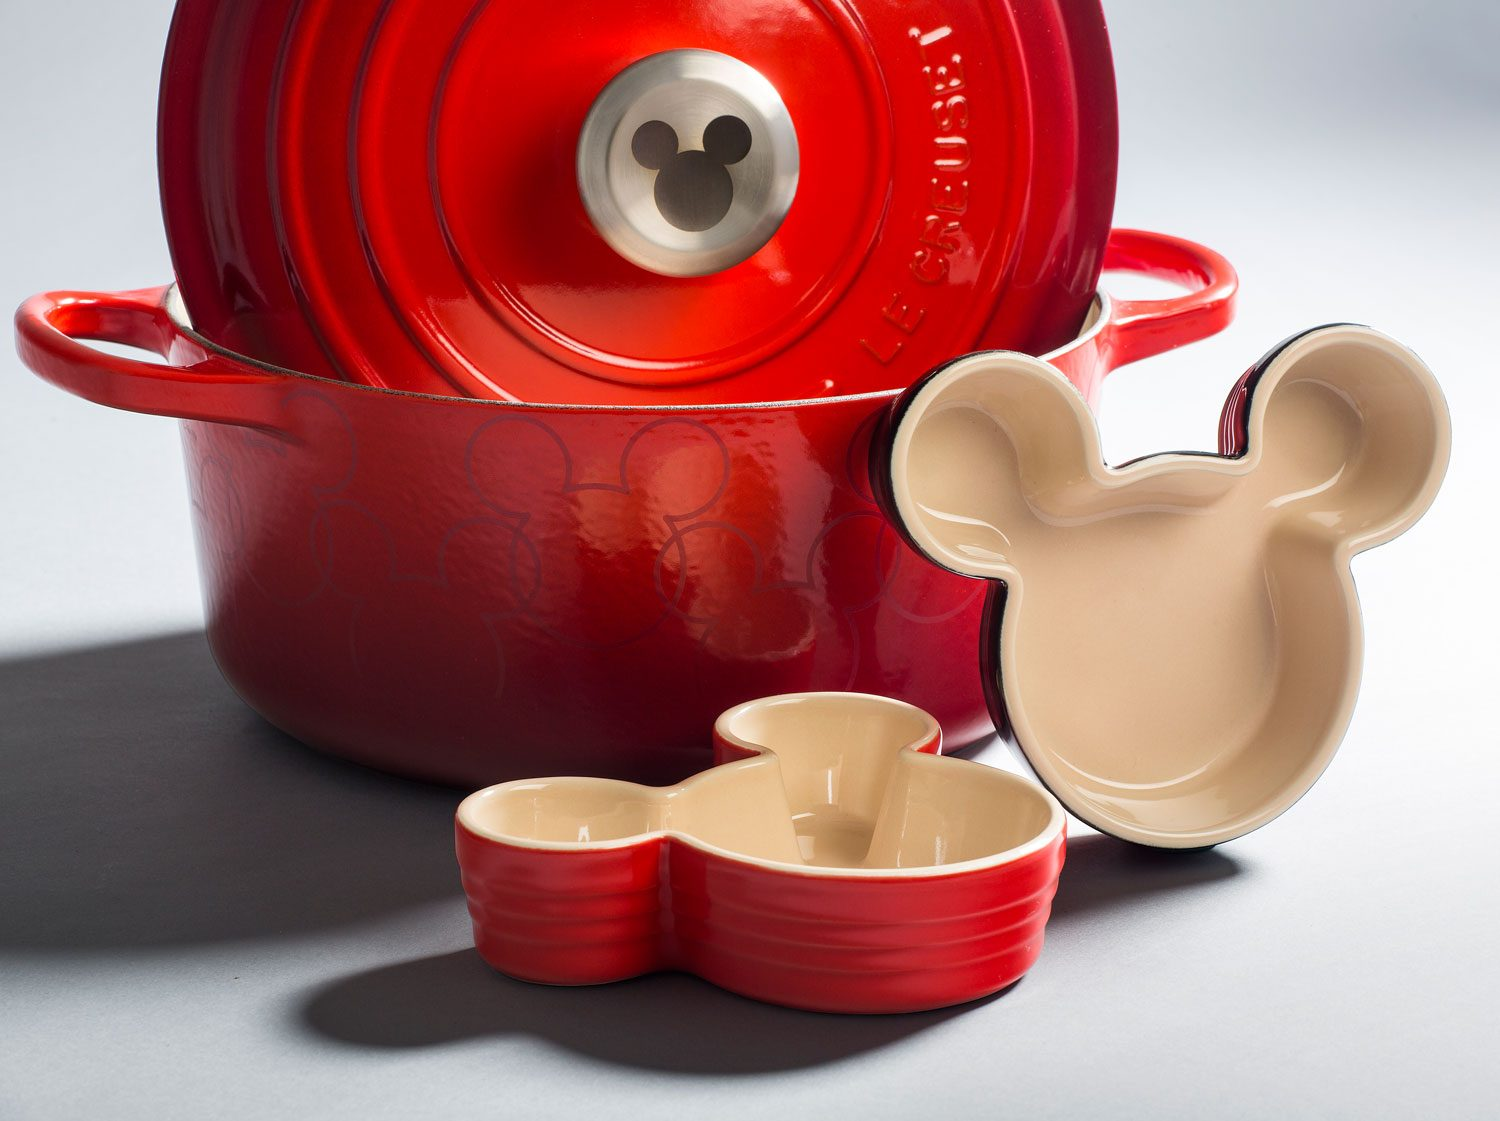 Le Creuset's New Mickey Mouse Collaboration Was Made for ...